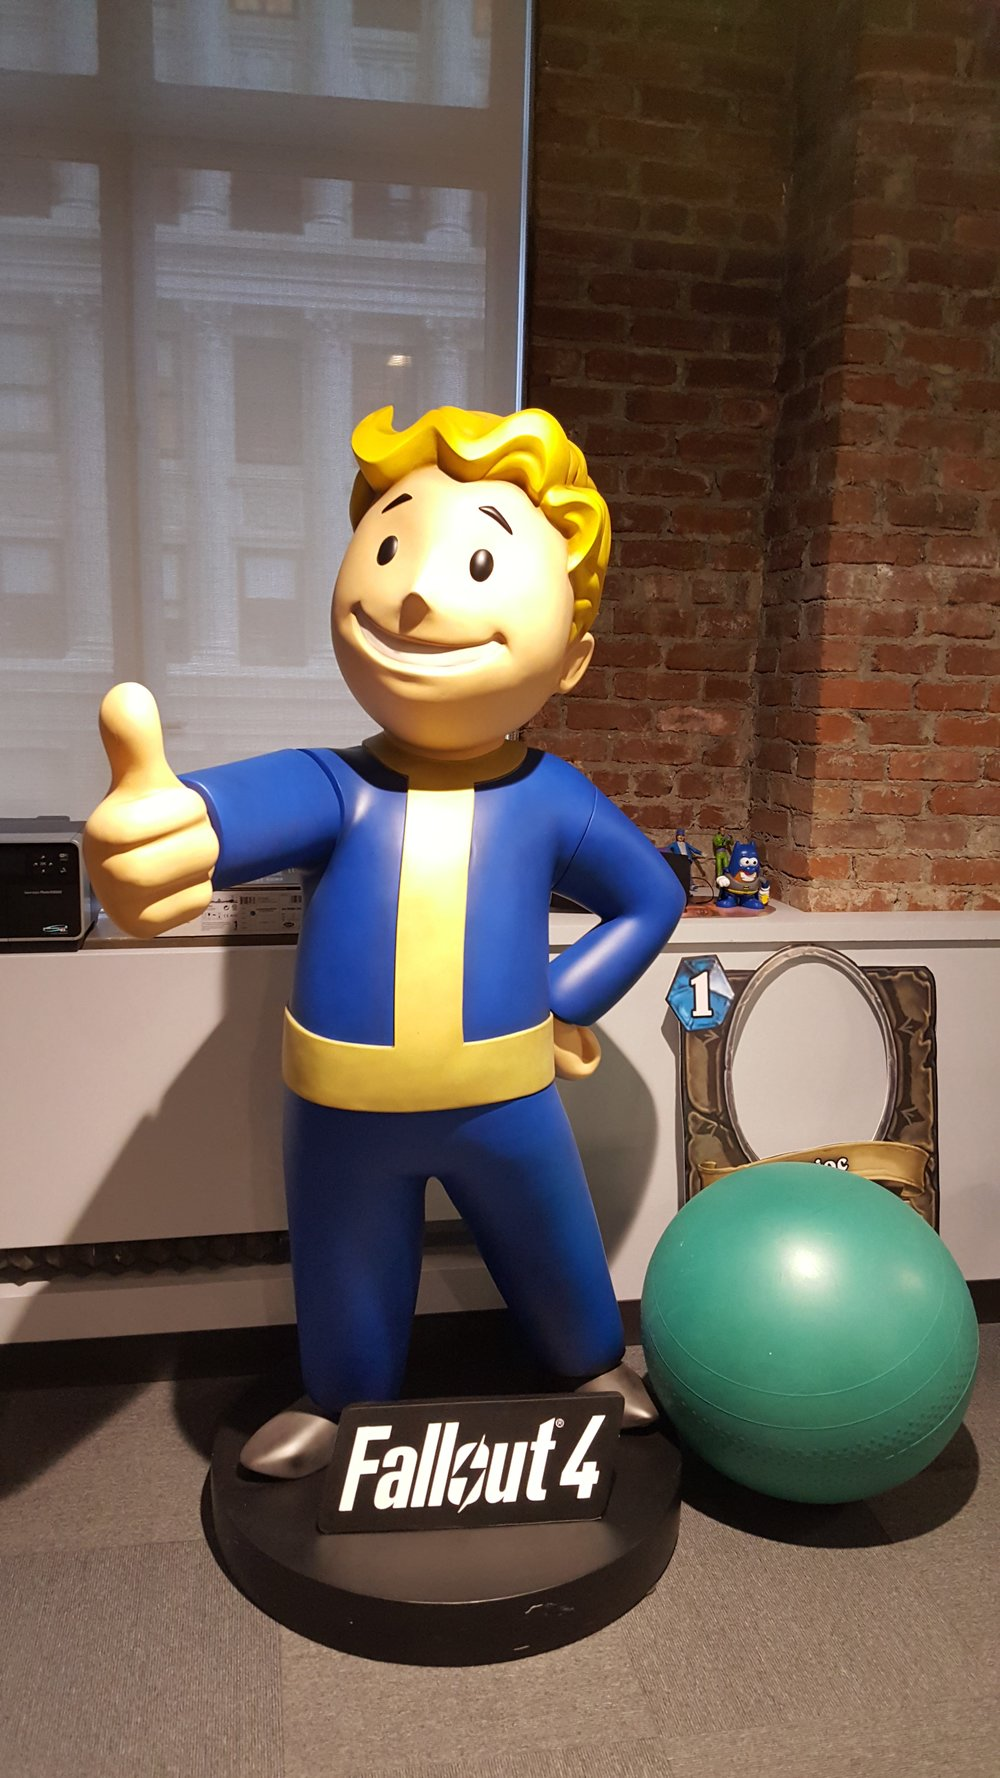 Check out this Fallout 4 life size statue vault boy!  👍